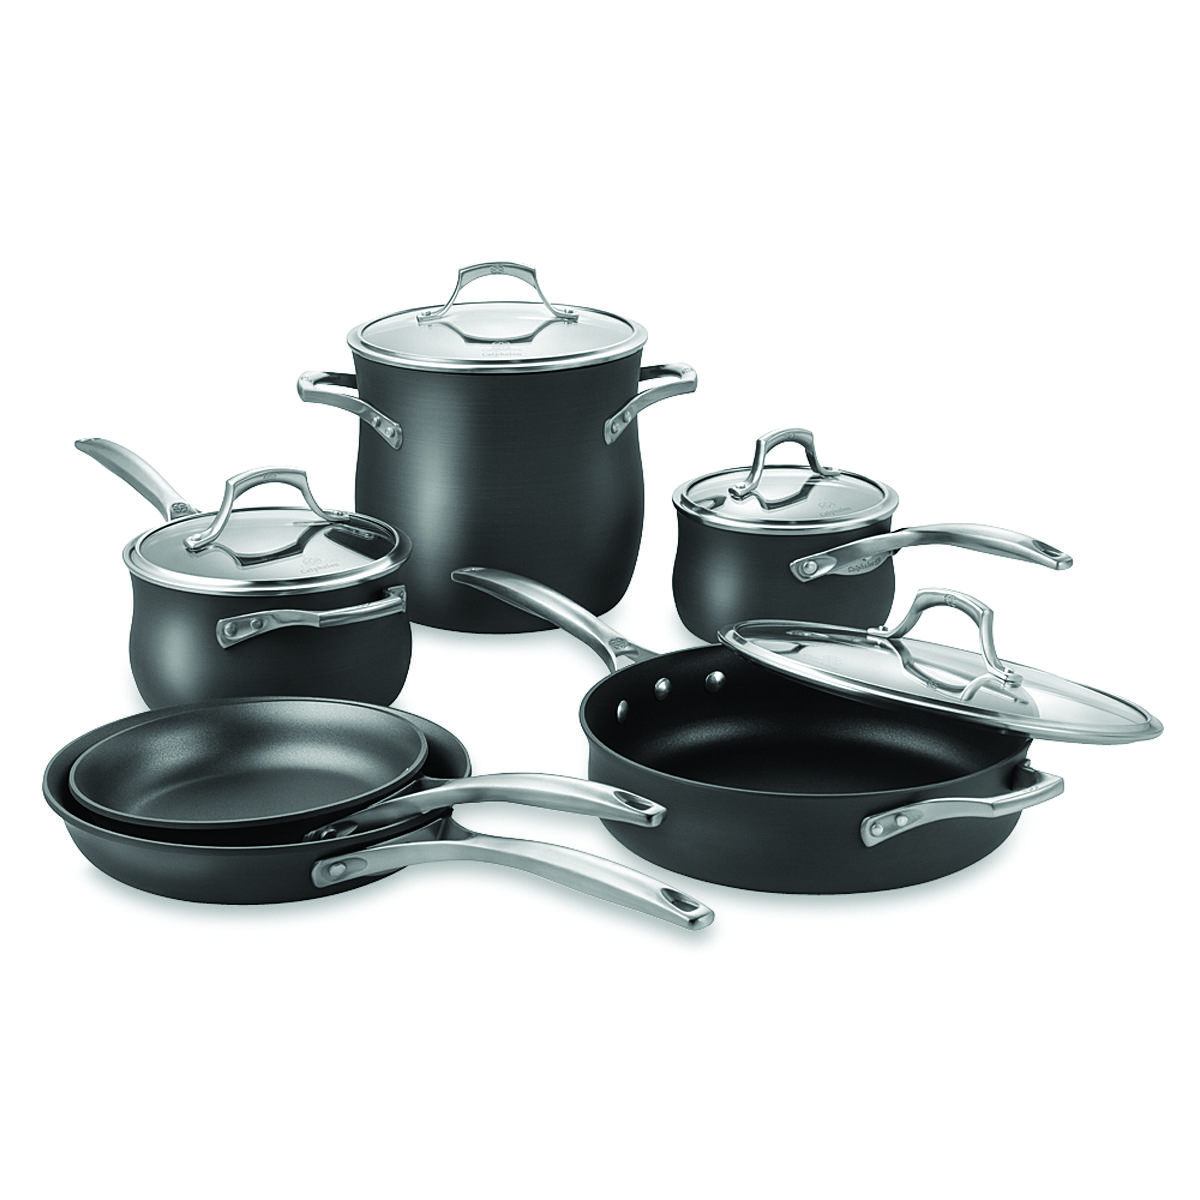 This Nonstick Cookware Set From Calphalon Will Let You Cook Like A